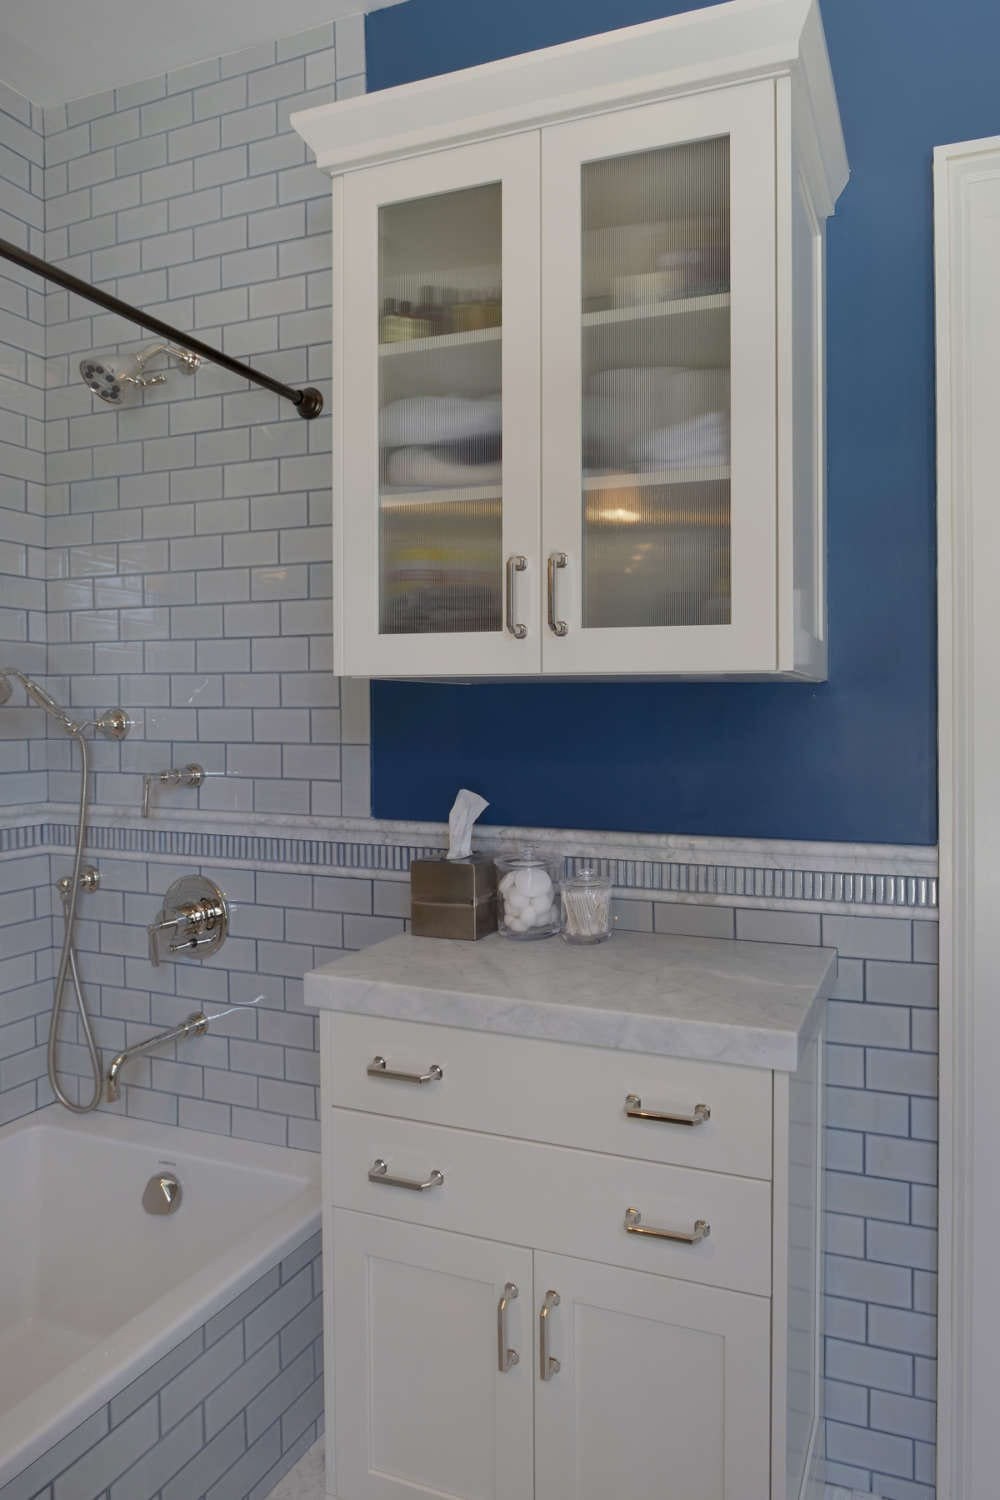 Transitional style secondary bath features white tile walls with grey grout, decorative chair rail tile and a bright blue painted accent wall. White painted, fully custom Bilotta Cabinetry vanity and storage cabinet with marble top and ribbed glass door fronts provide ample storage. Design by Paulette Gambacorta of Bilotta Kitchens.